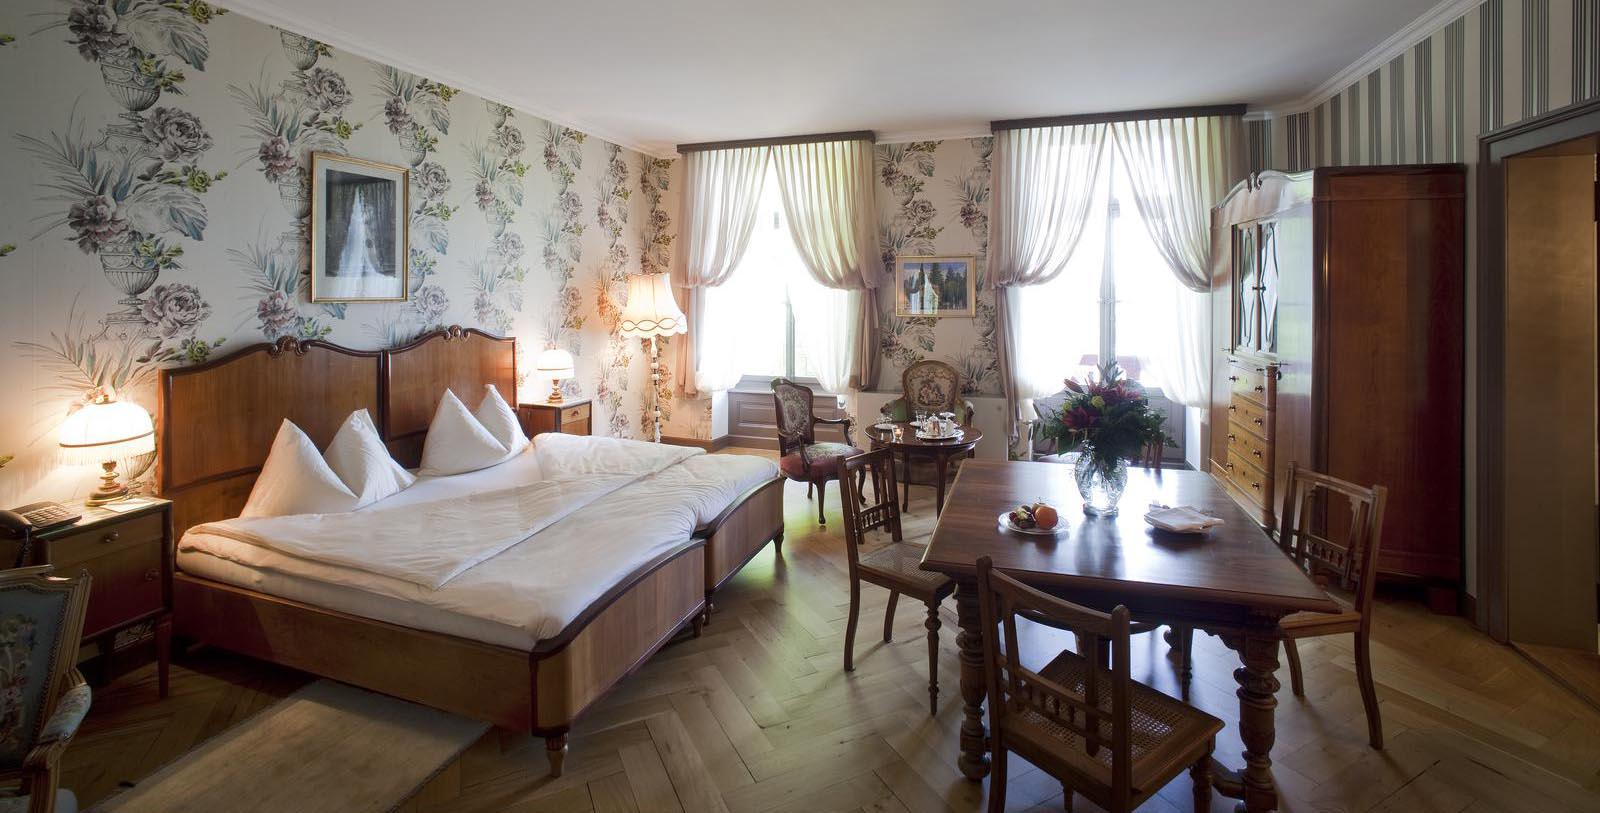 Image of Guestroom Interior, Grandhotel Giessbach, Brienz, Switzerland, 1822, Member of Historic Hotels Worldwide, Location Map